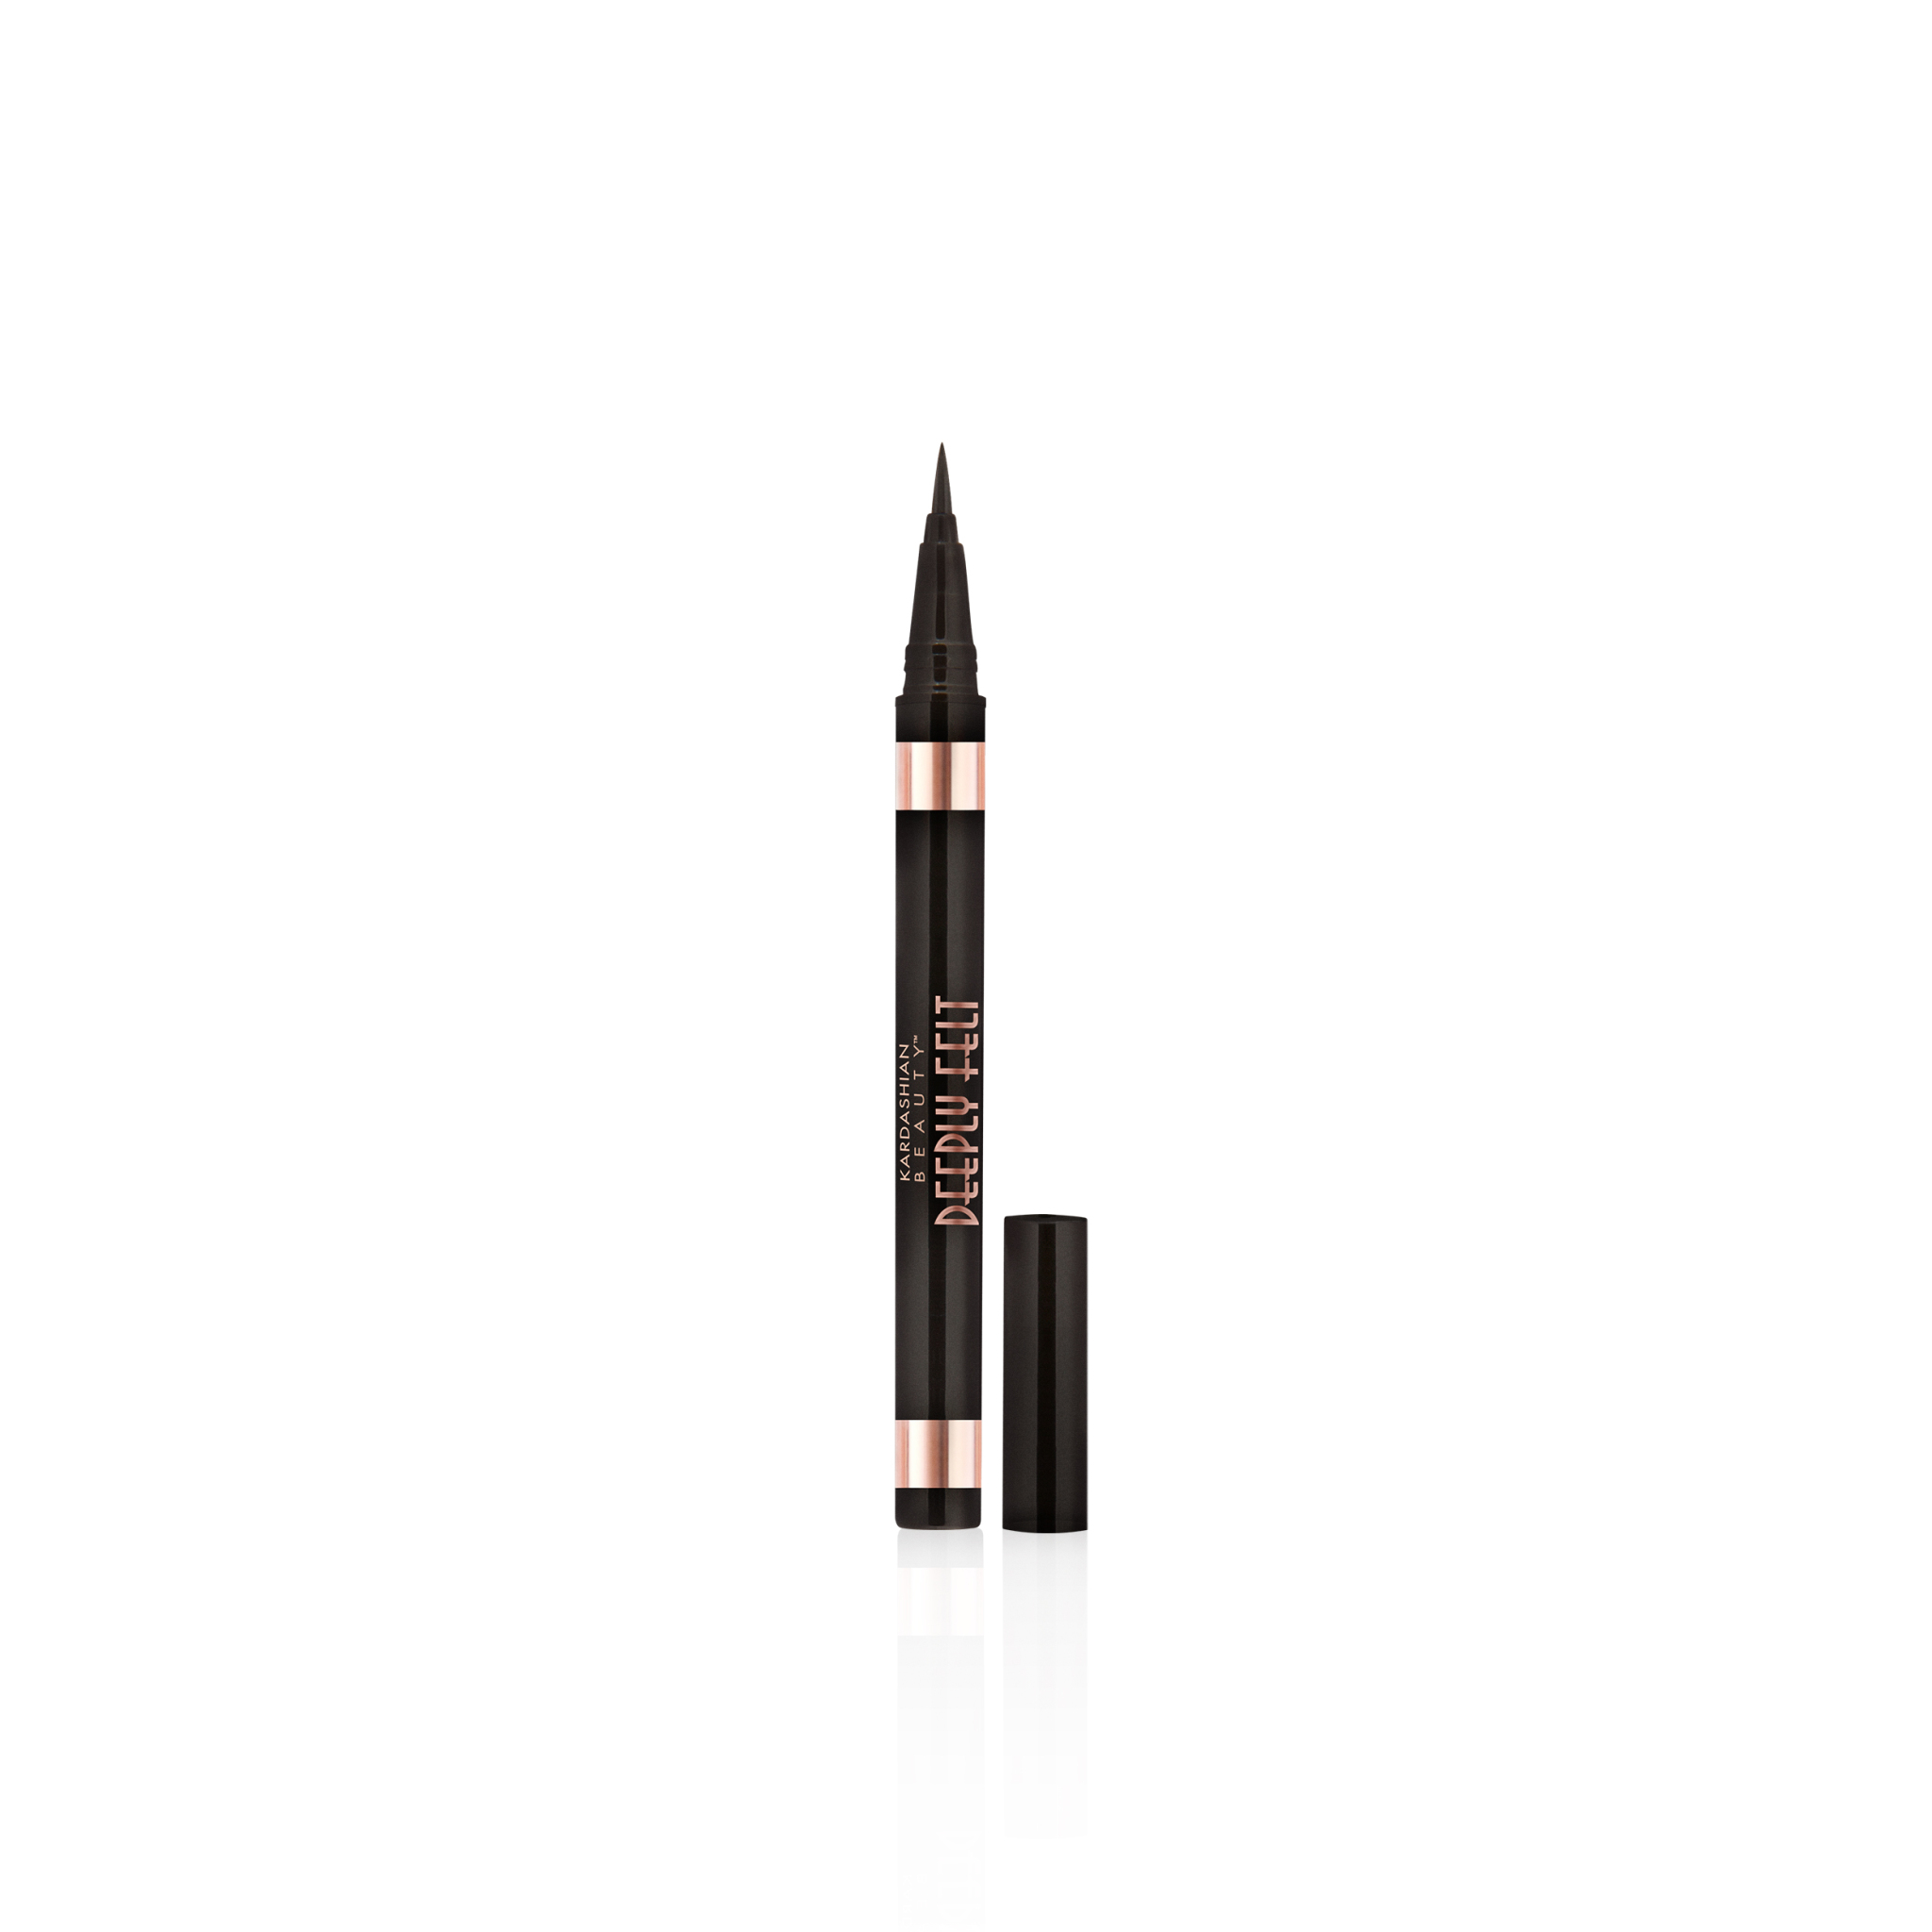 Kardashian Beauty Eyeliner - Deeply Felt (US)